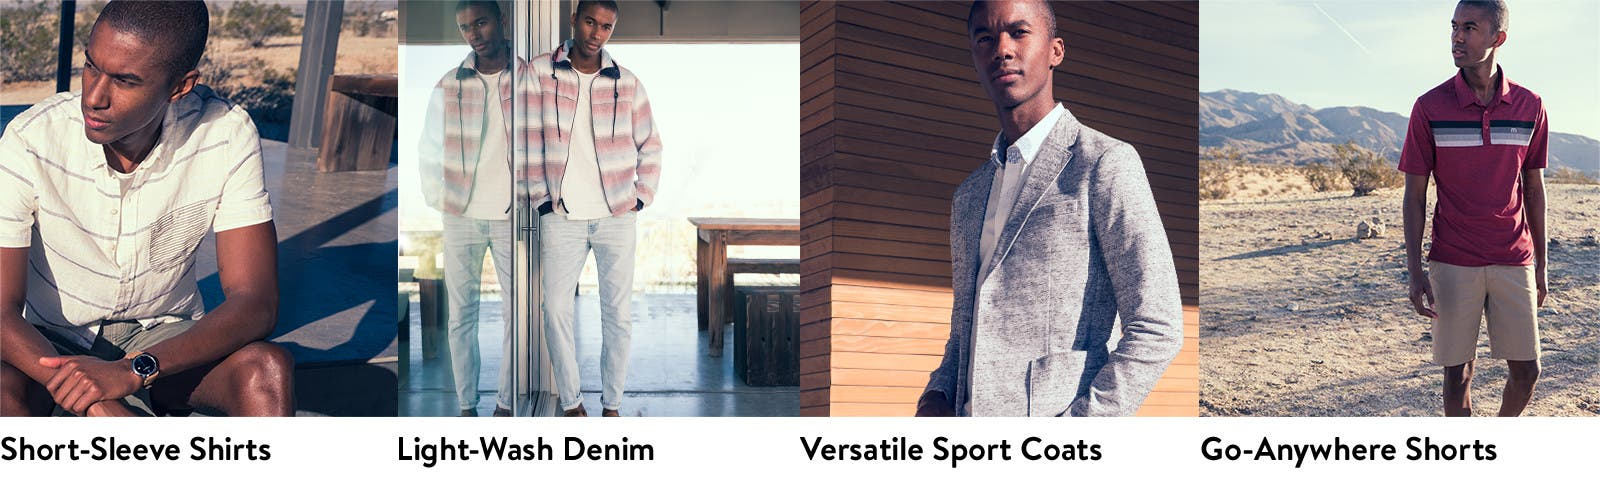 Short-sleeve shirts, light-wash denim, unstructured sport coats and go-anywhere shorts.